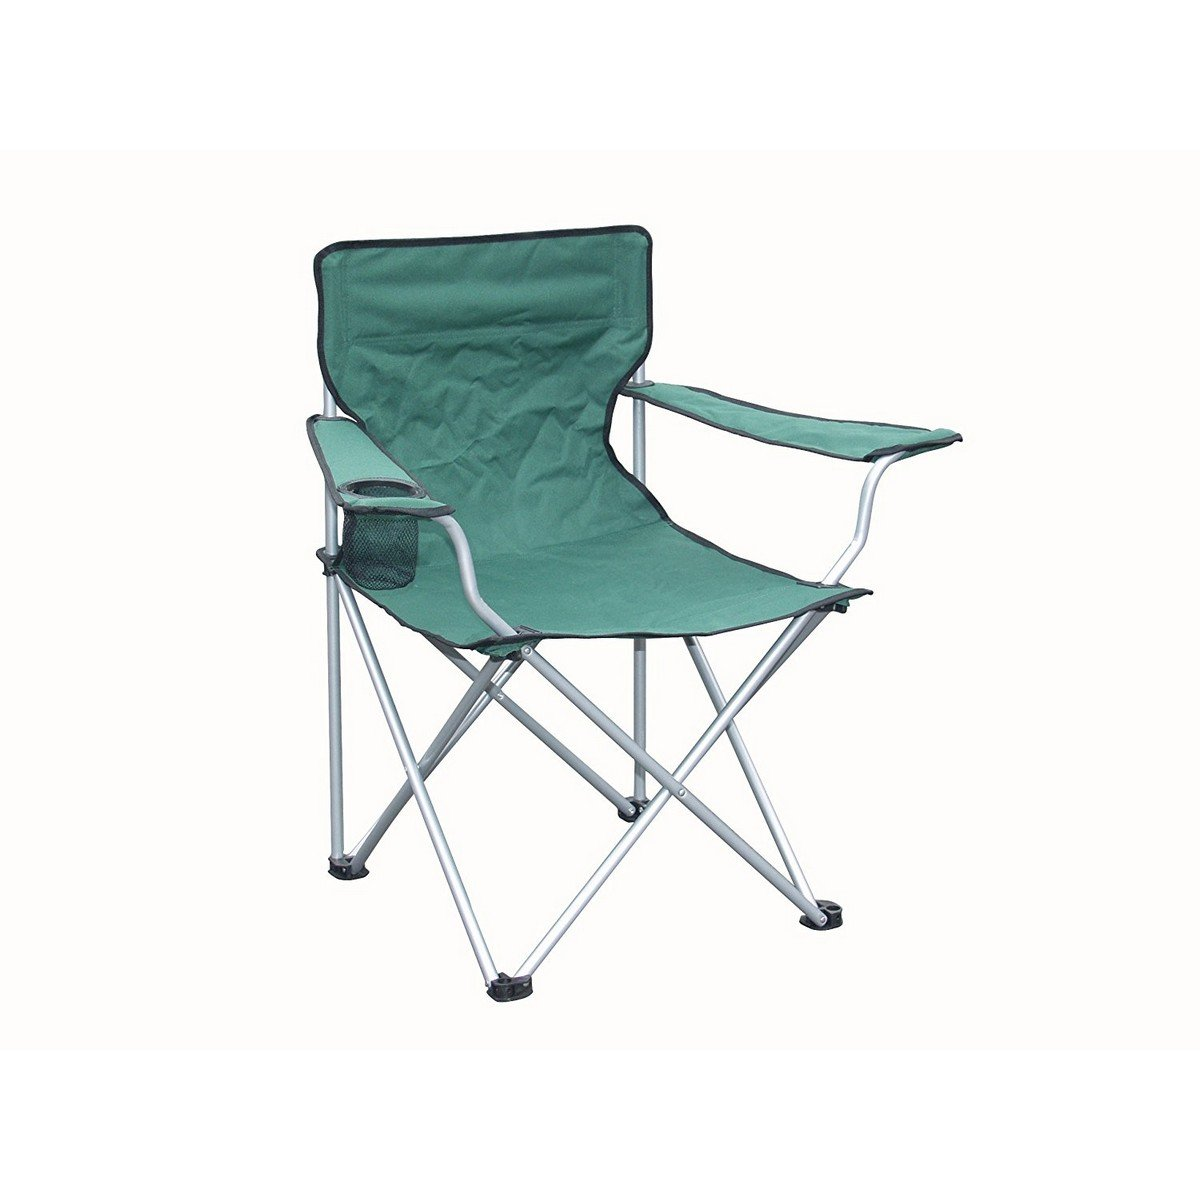 Hamble Redwood BB-FC102 Canvas Chair with Arms Hamble Distribution ltd